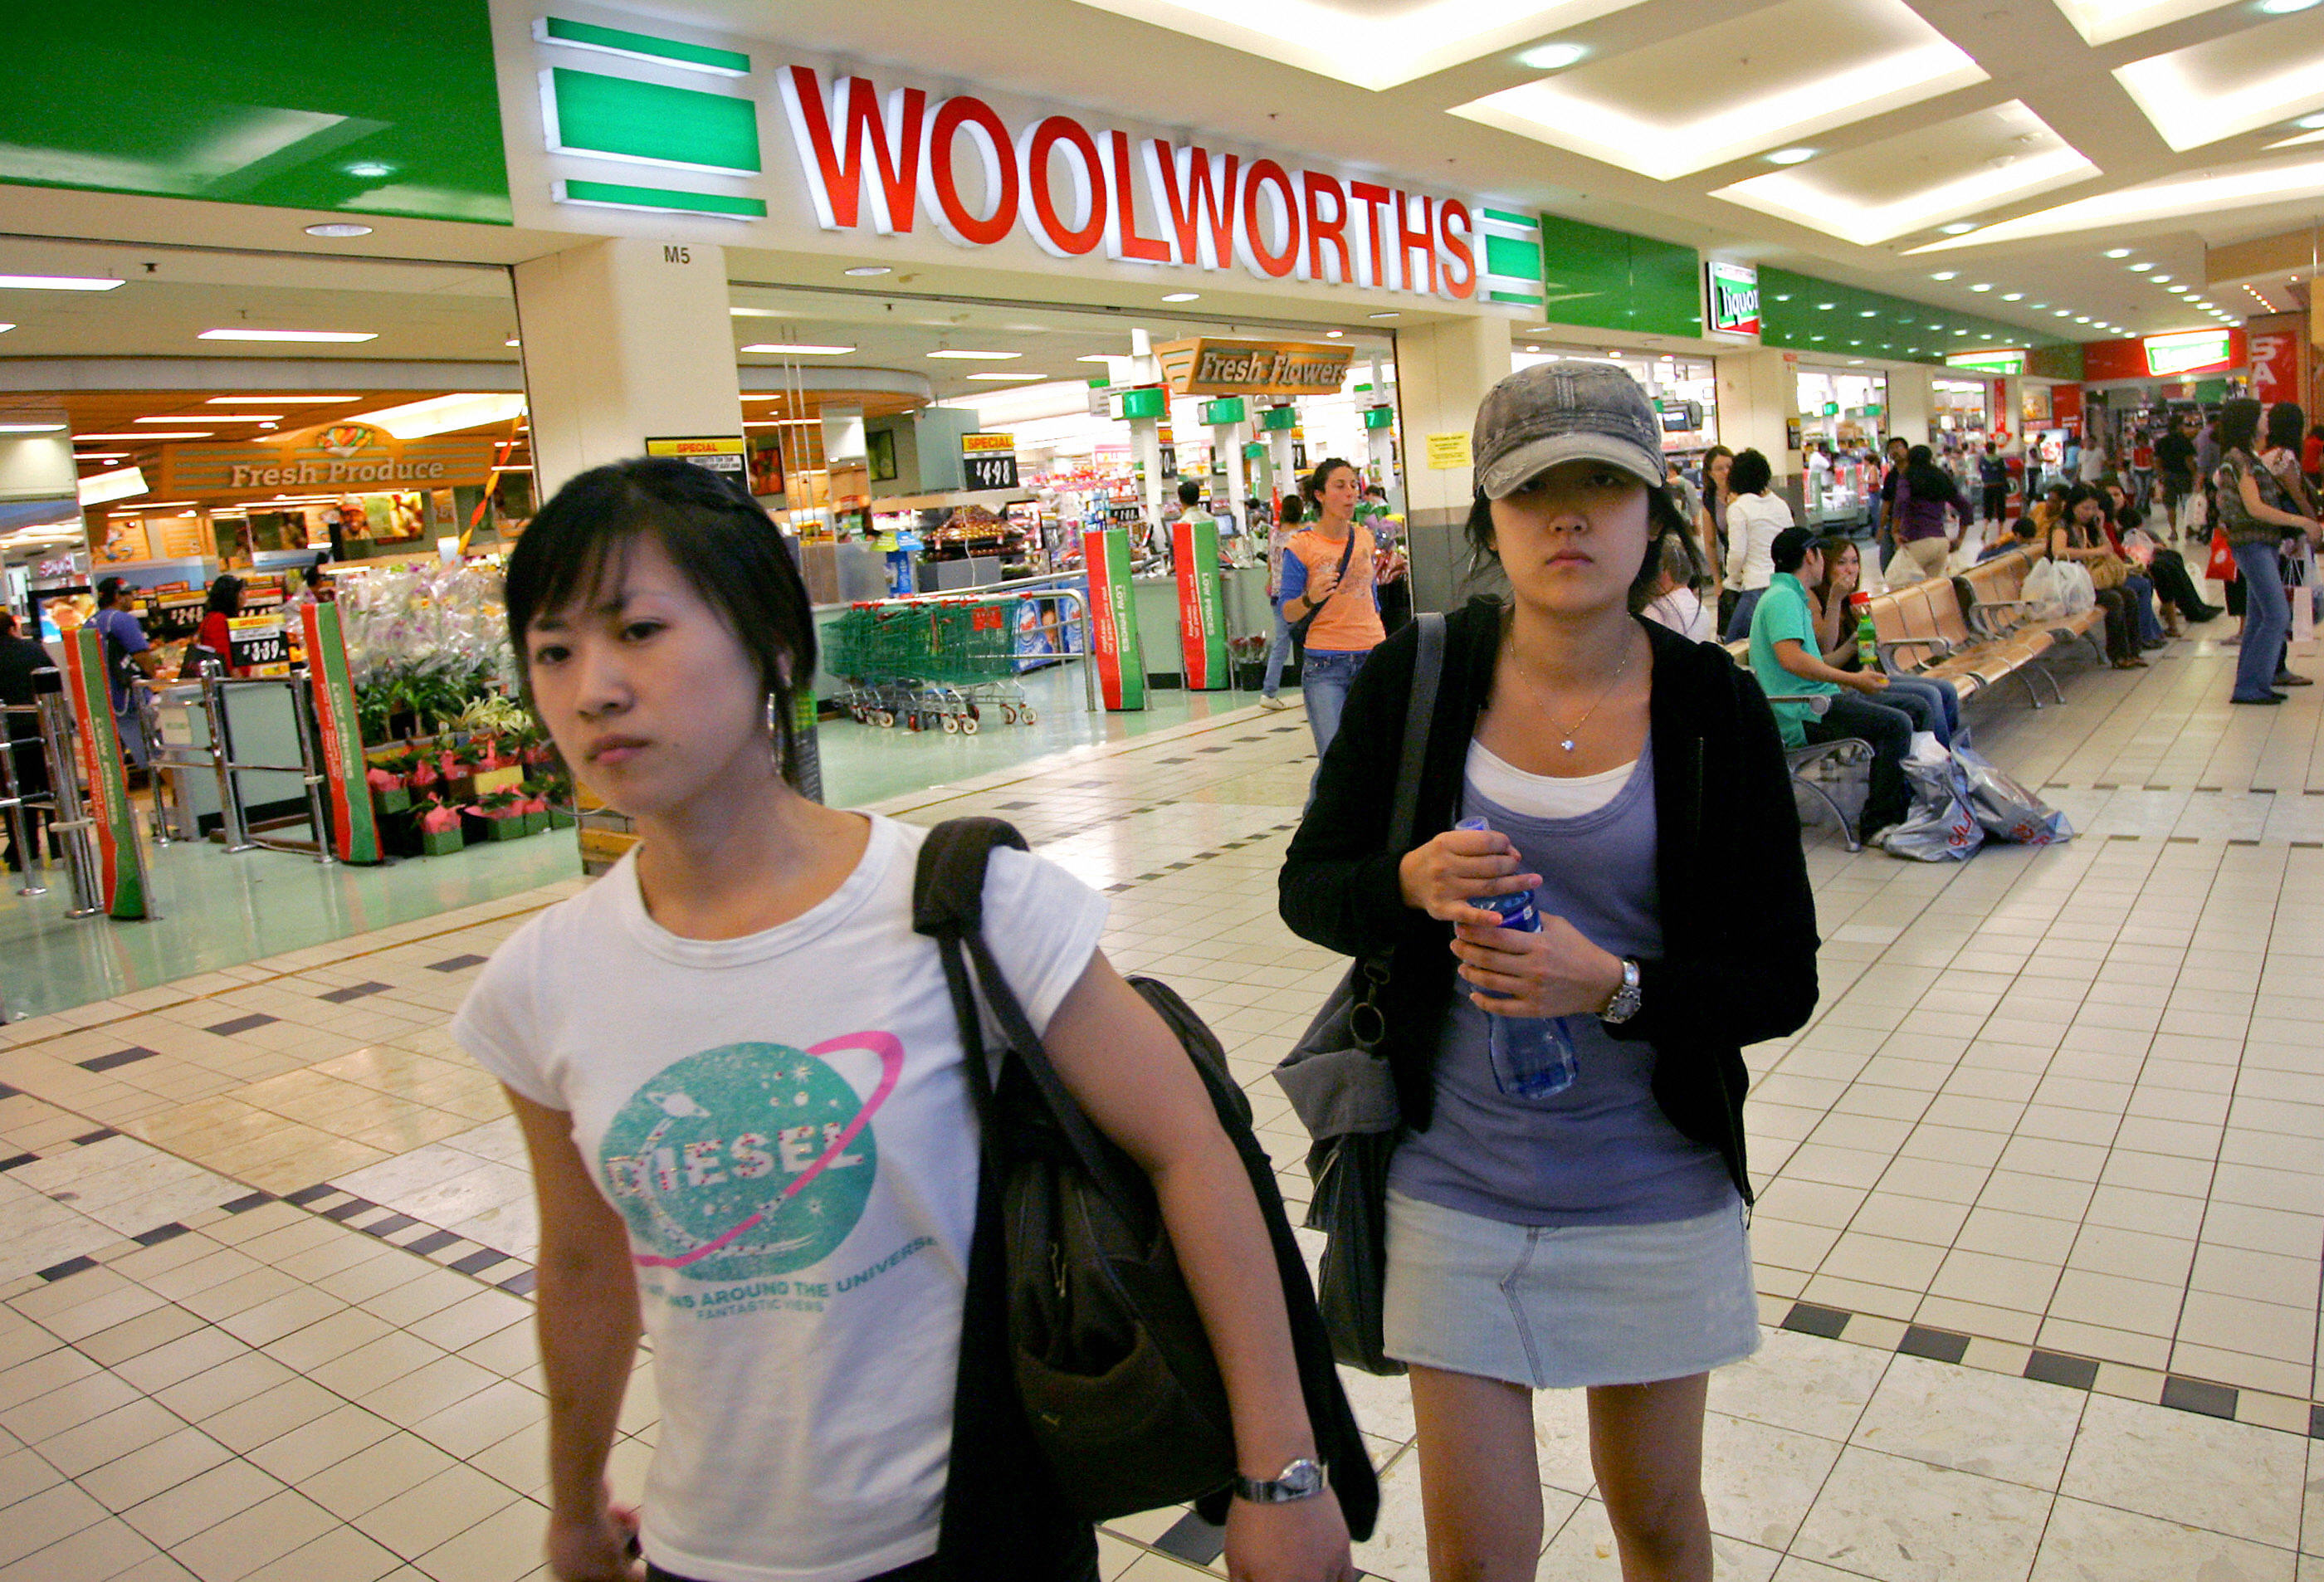 Sydney siders are seen shopping at a Woolworths